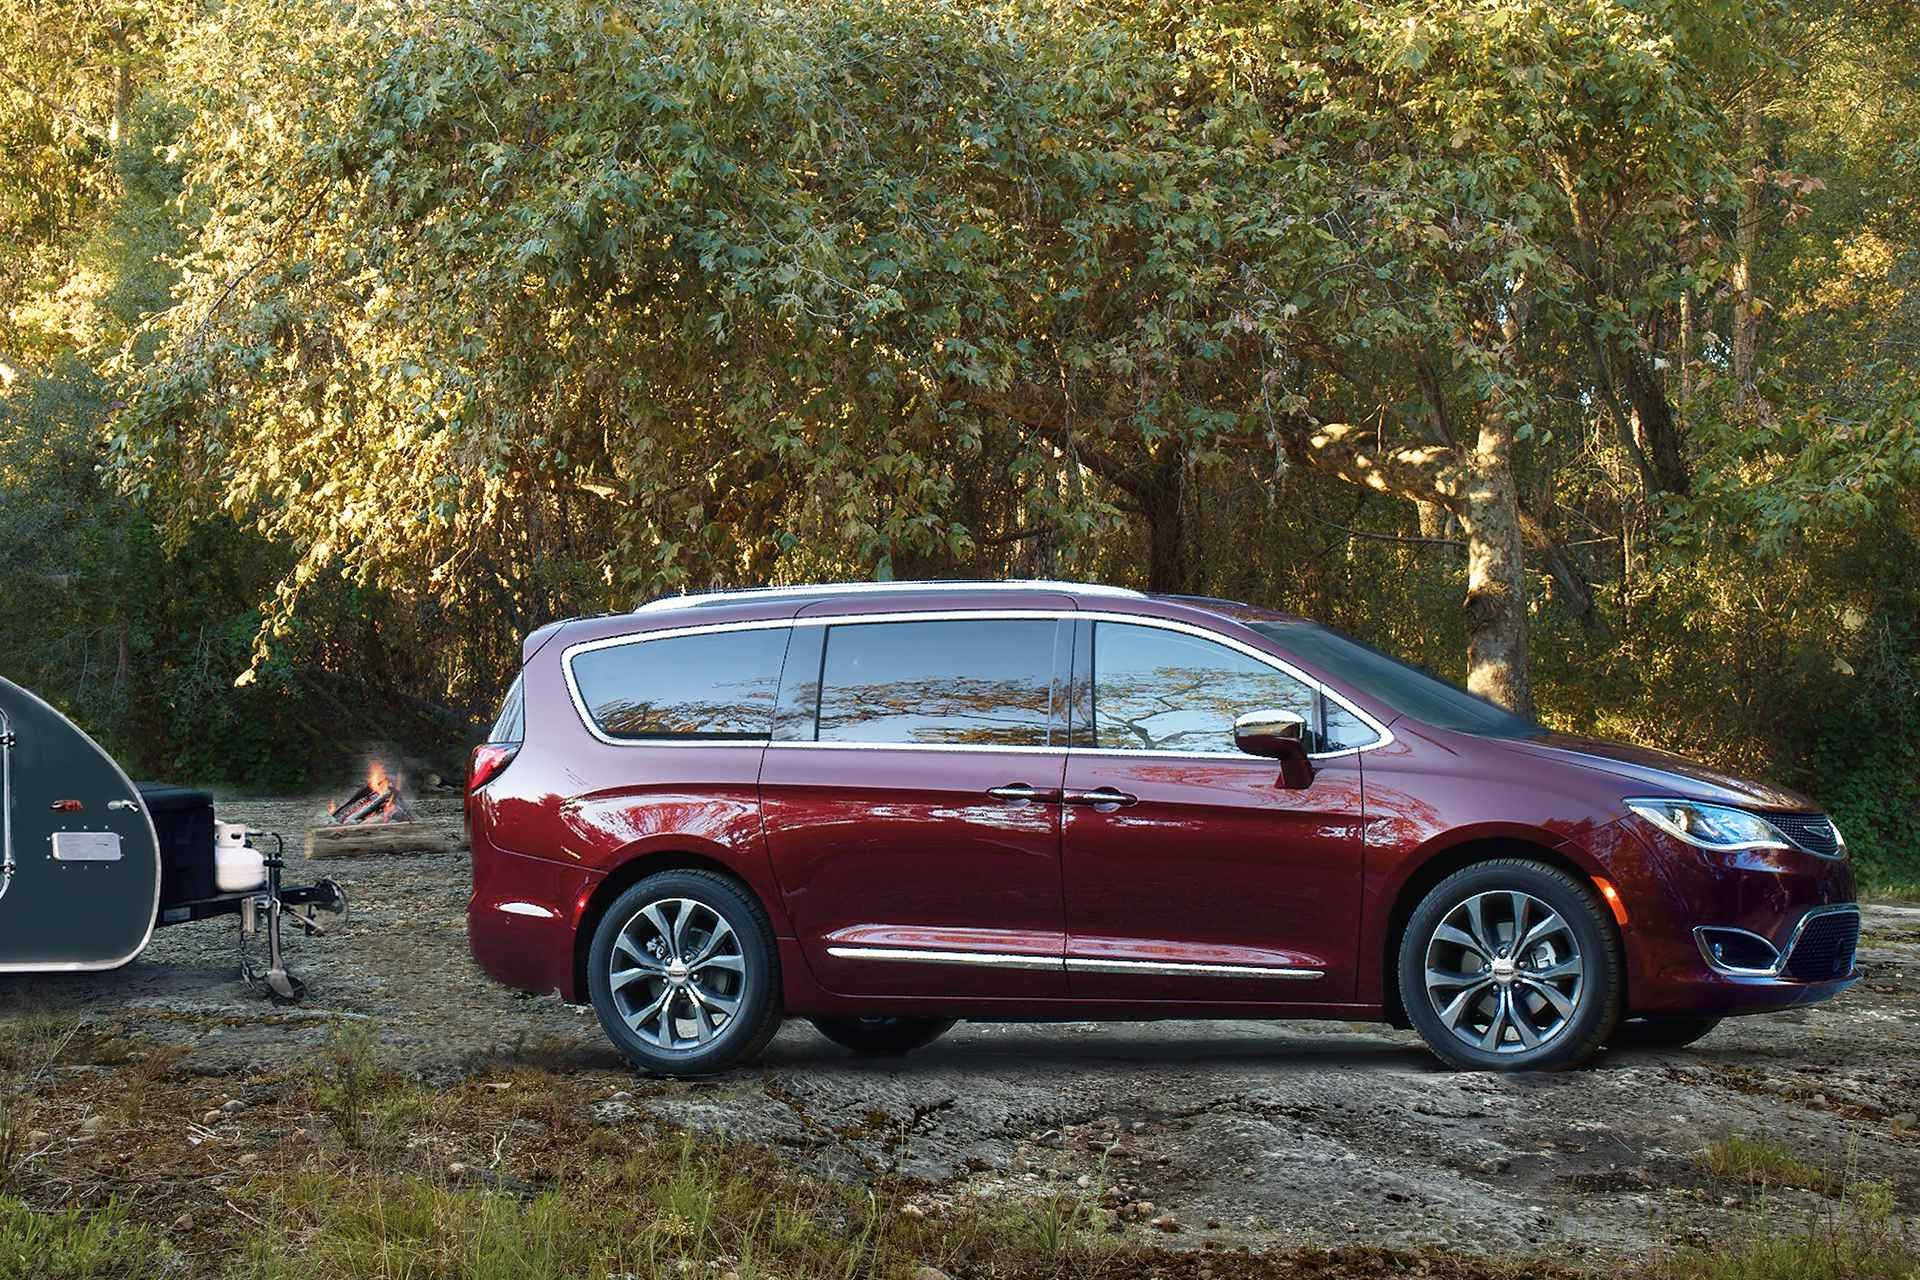 2019 Chrysler Pacifica red exterior parked trailer